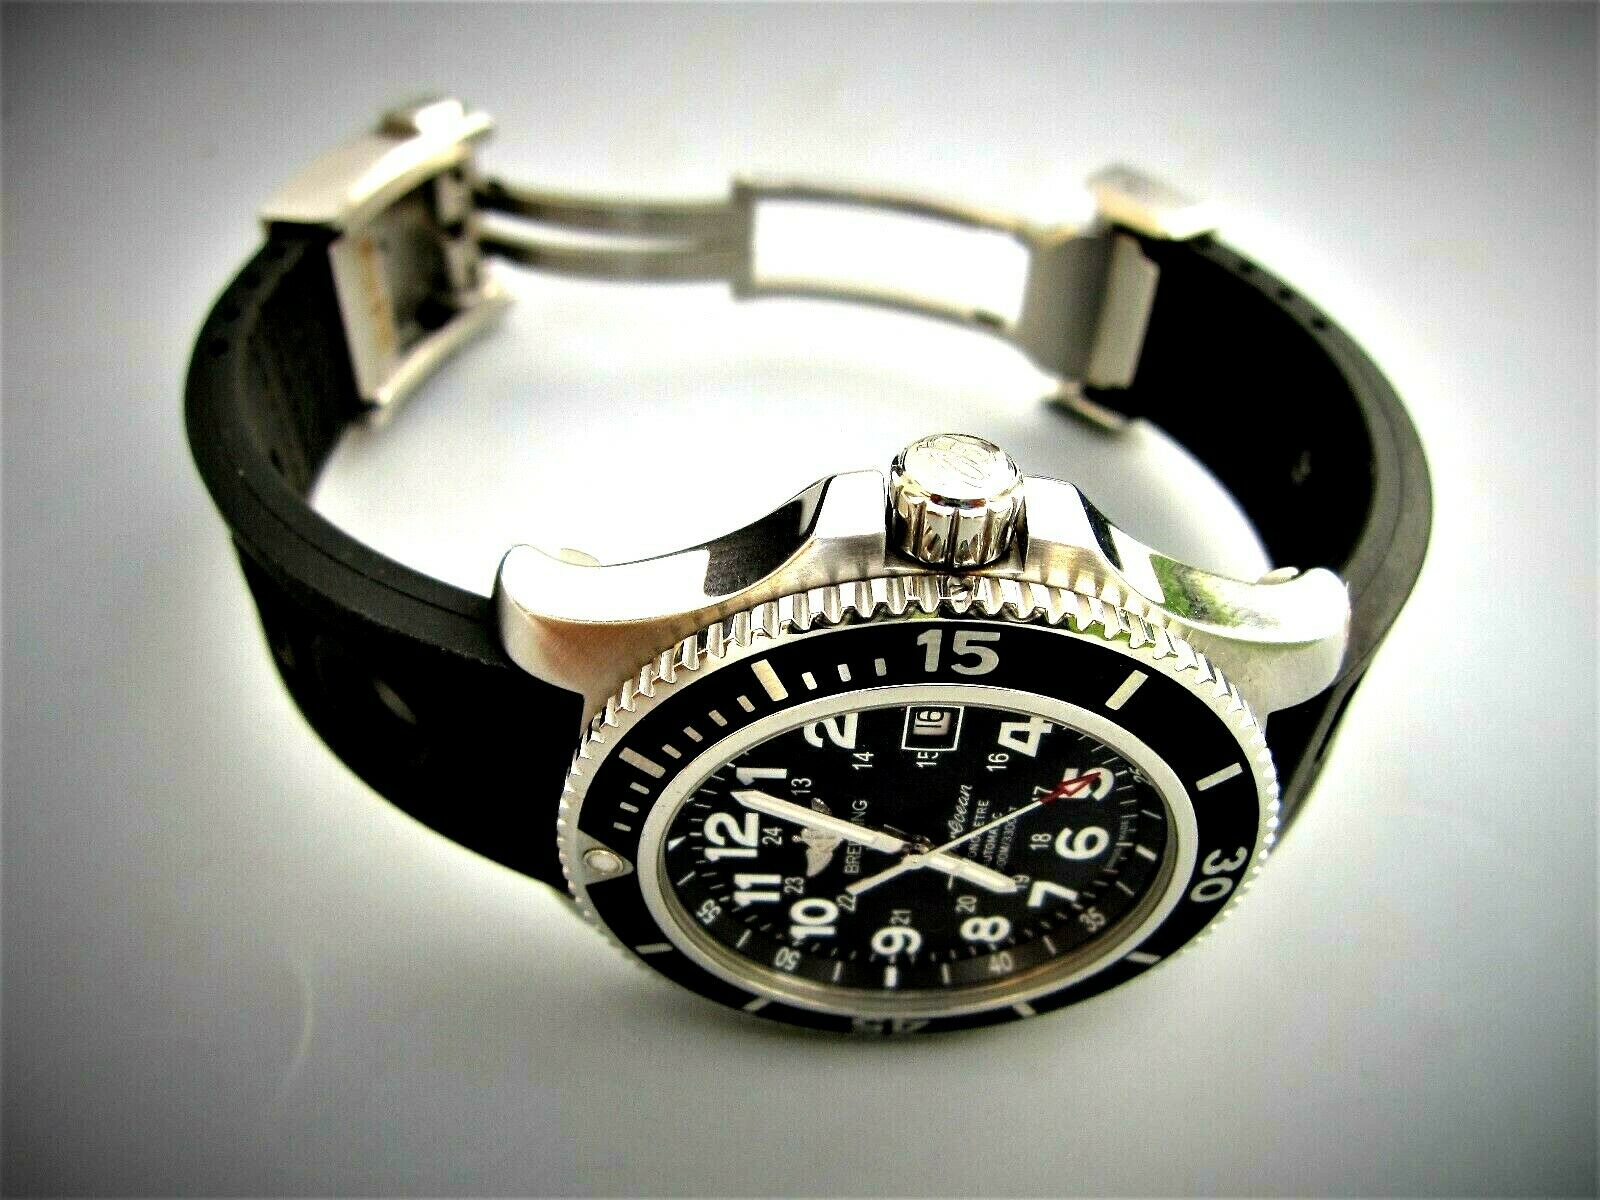 Breitling SUPEROCEAN 2 Volcano Stainless steel Automatic Diver A17342 black dial - watch picture 1